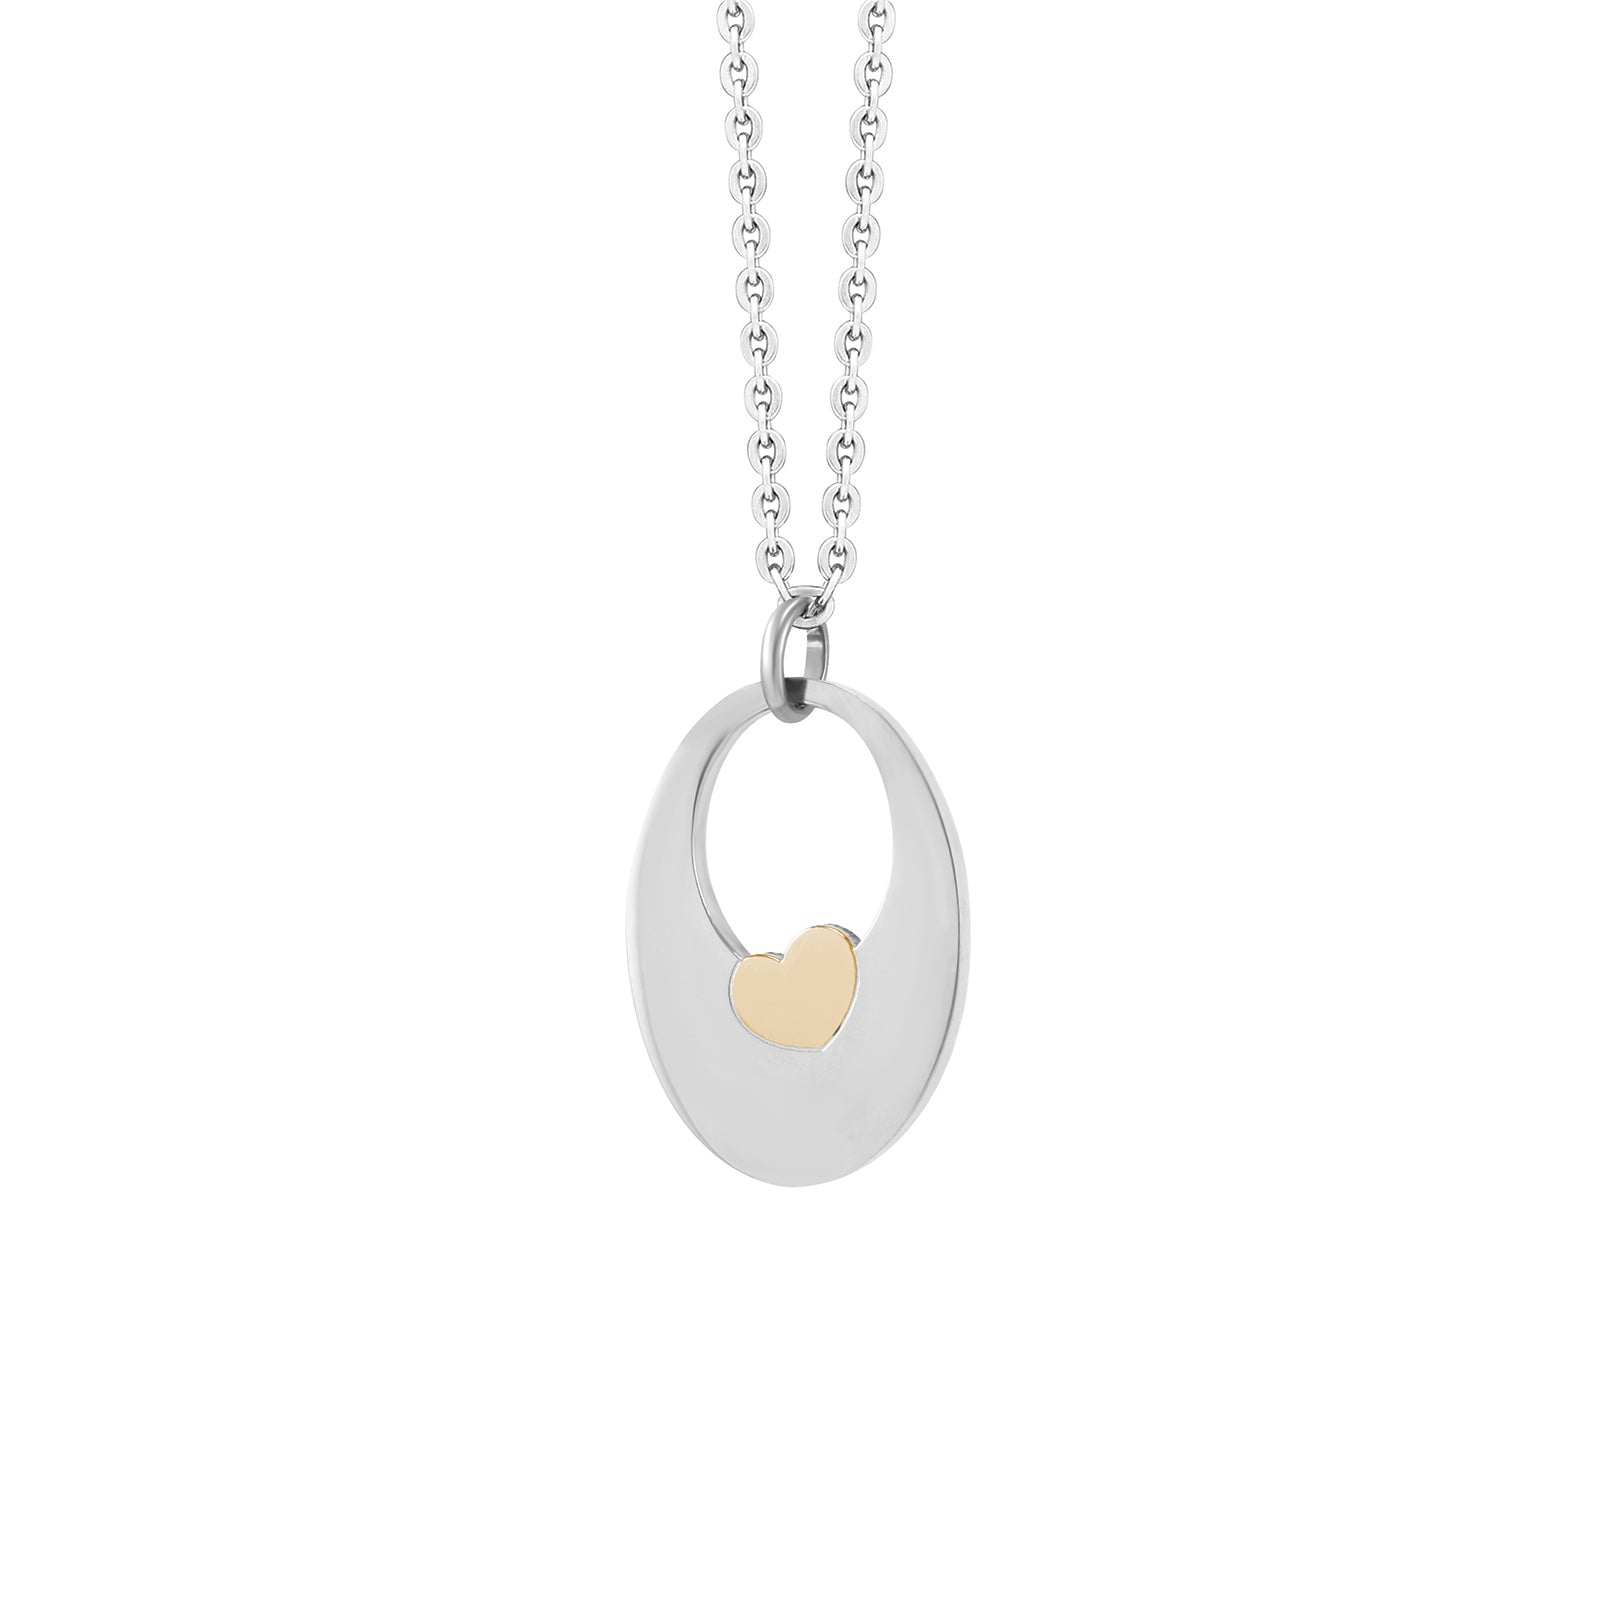 MNC-P147-A Stainless Steel Pendant with Heart